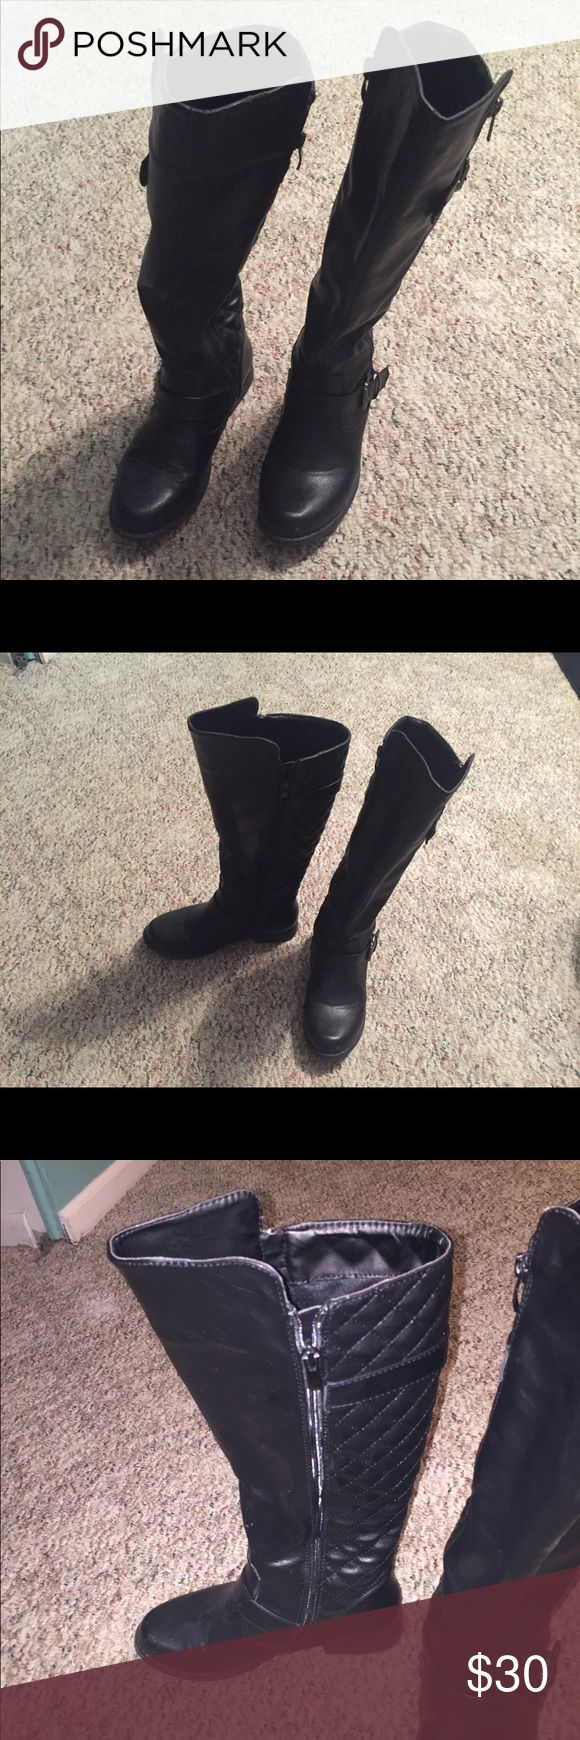 Black rider boots size 6 Cute black ridding boots Shoes Winter & Rain Boots